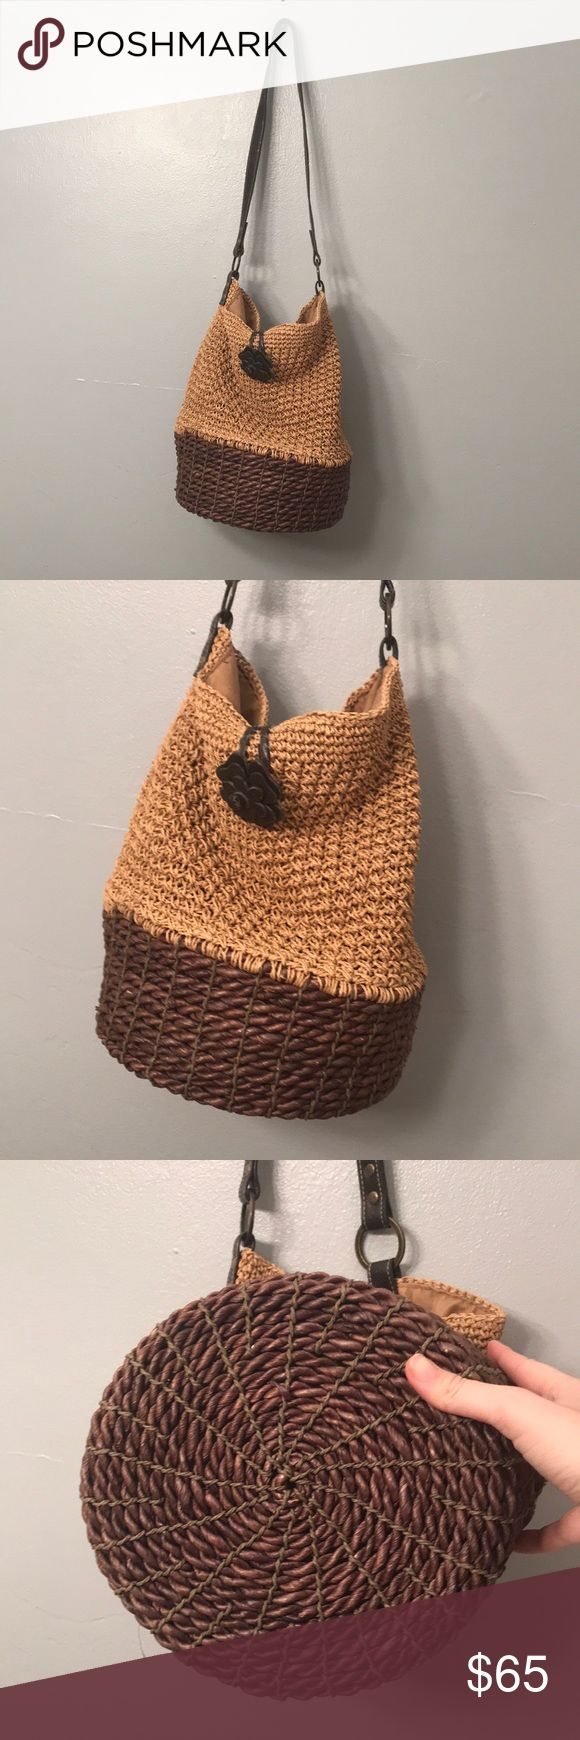 Gerry Weber handbag woven basket look Find handbag strap that goes around the flower is fraying. Hand strap has some wear  Love that this bag is unusual! #4.777 Gerry Weber Bags